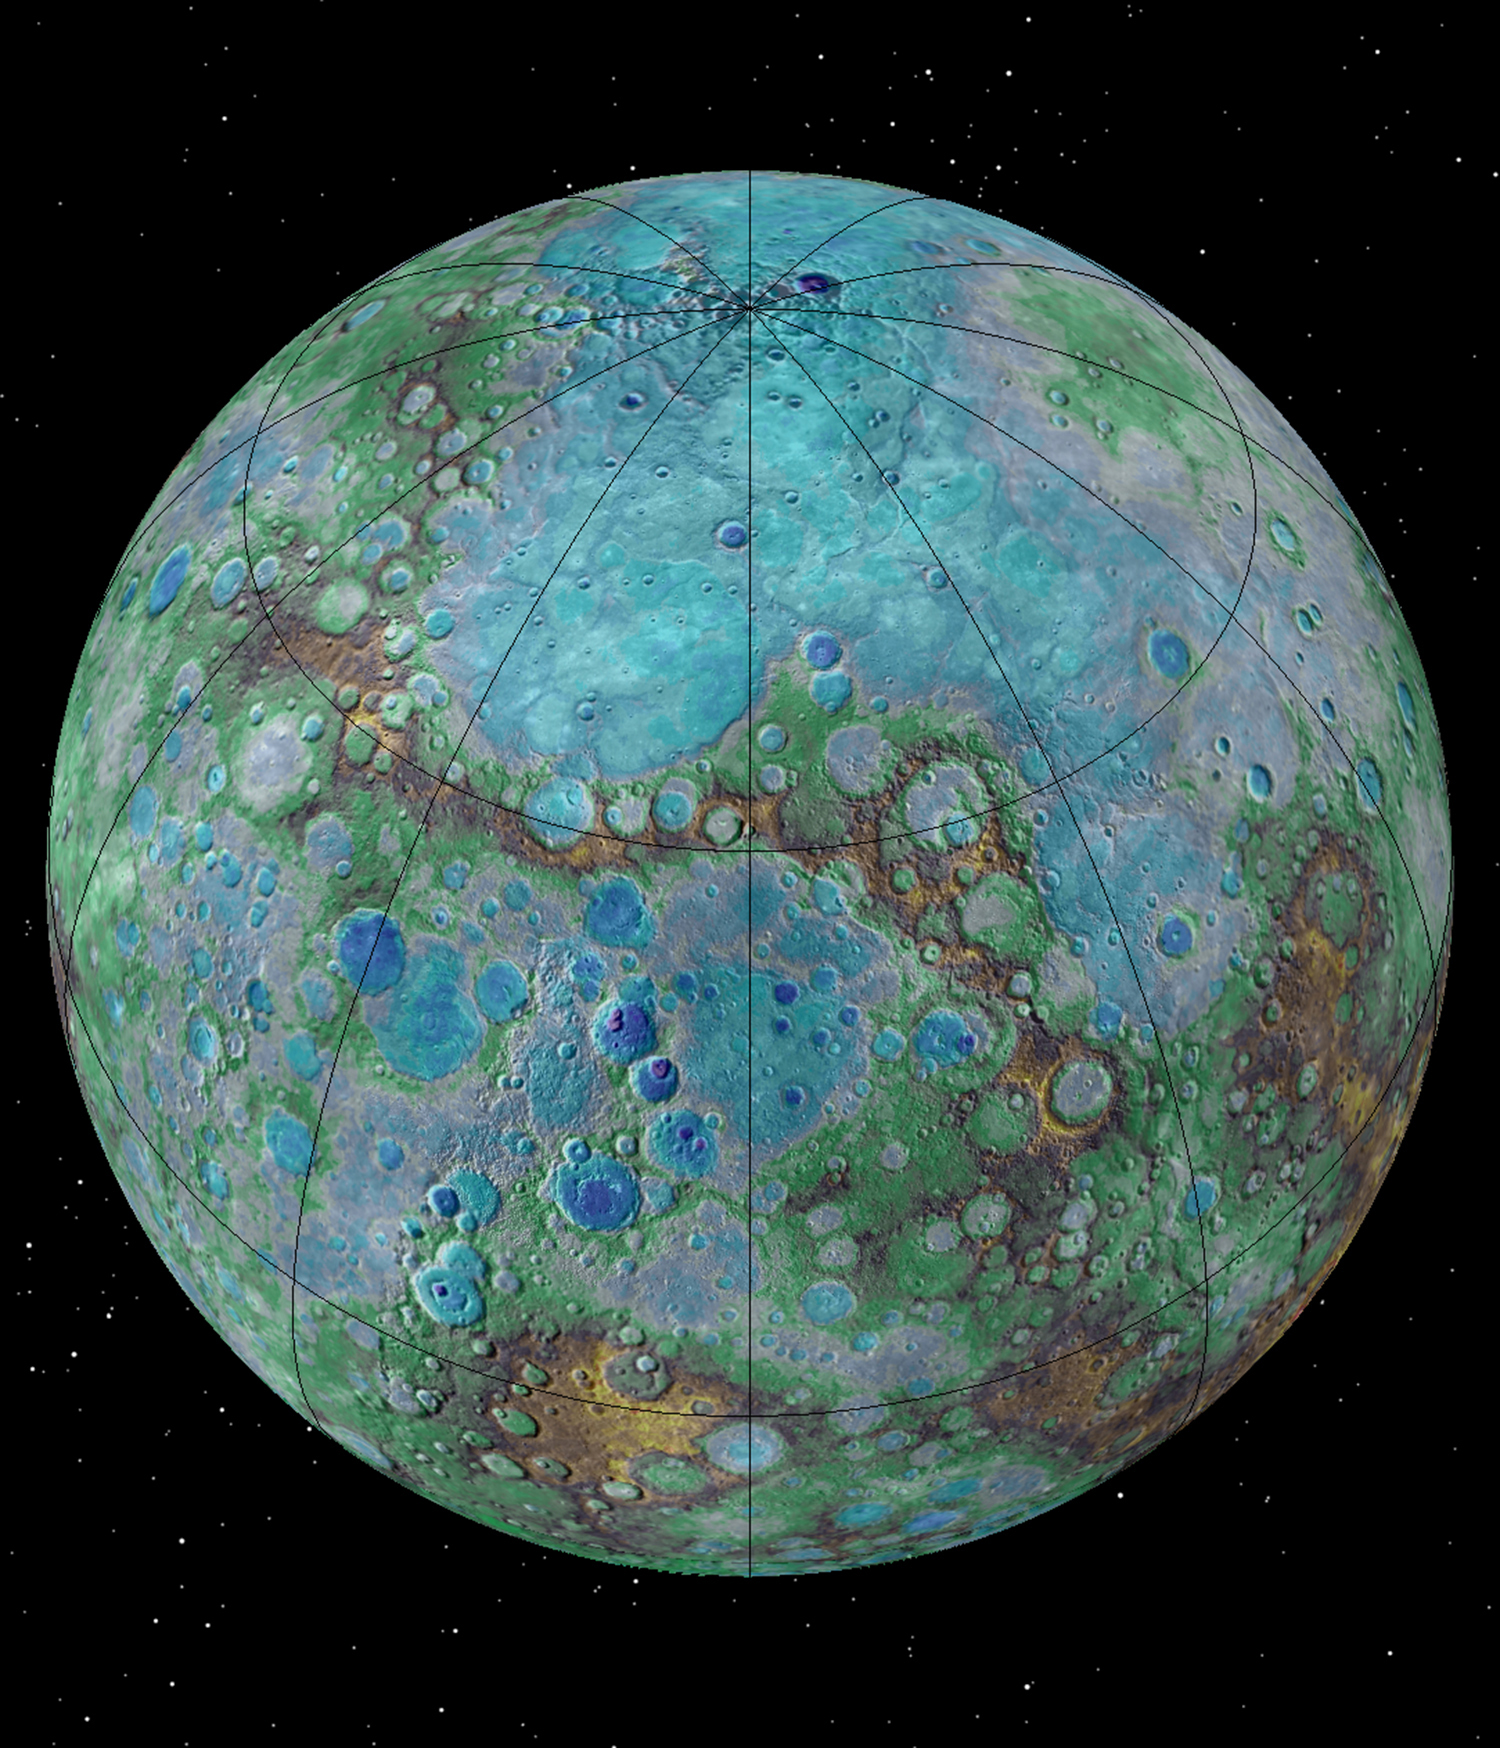 Tectonically Active Planet Mercury | NASA